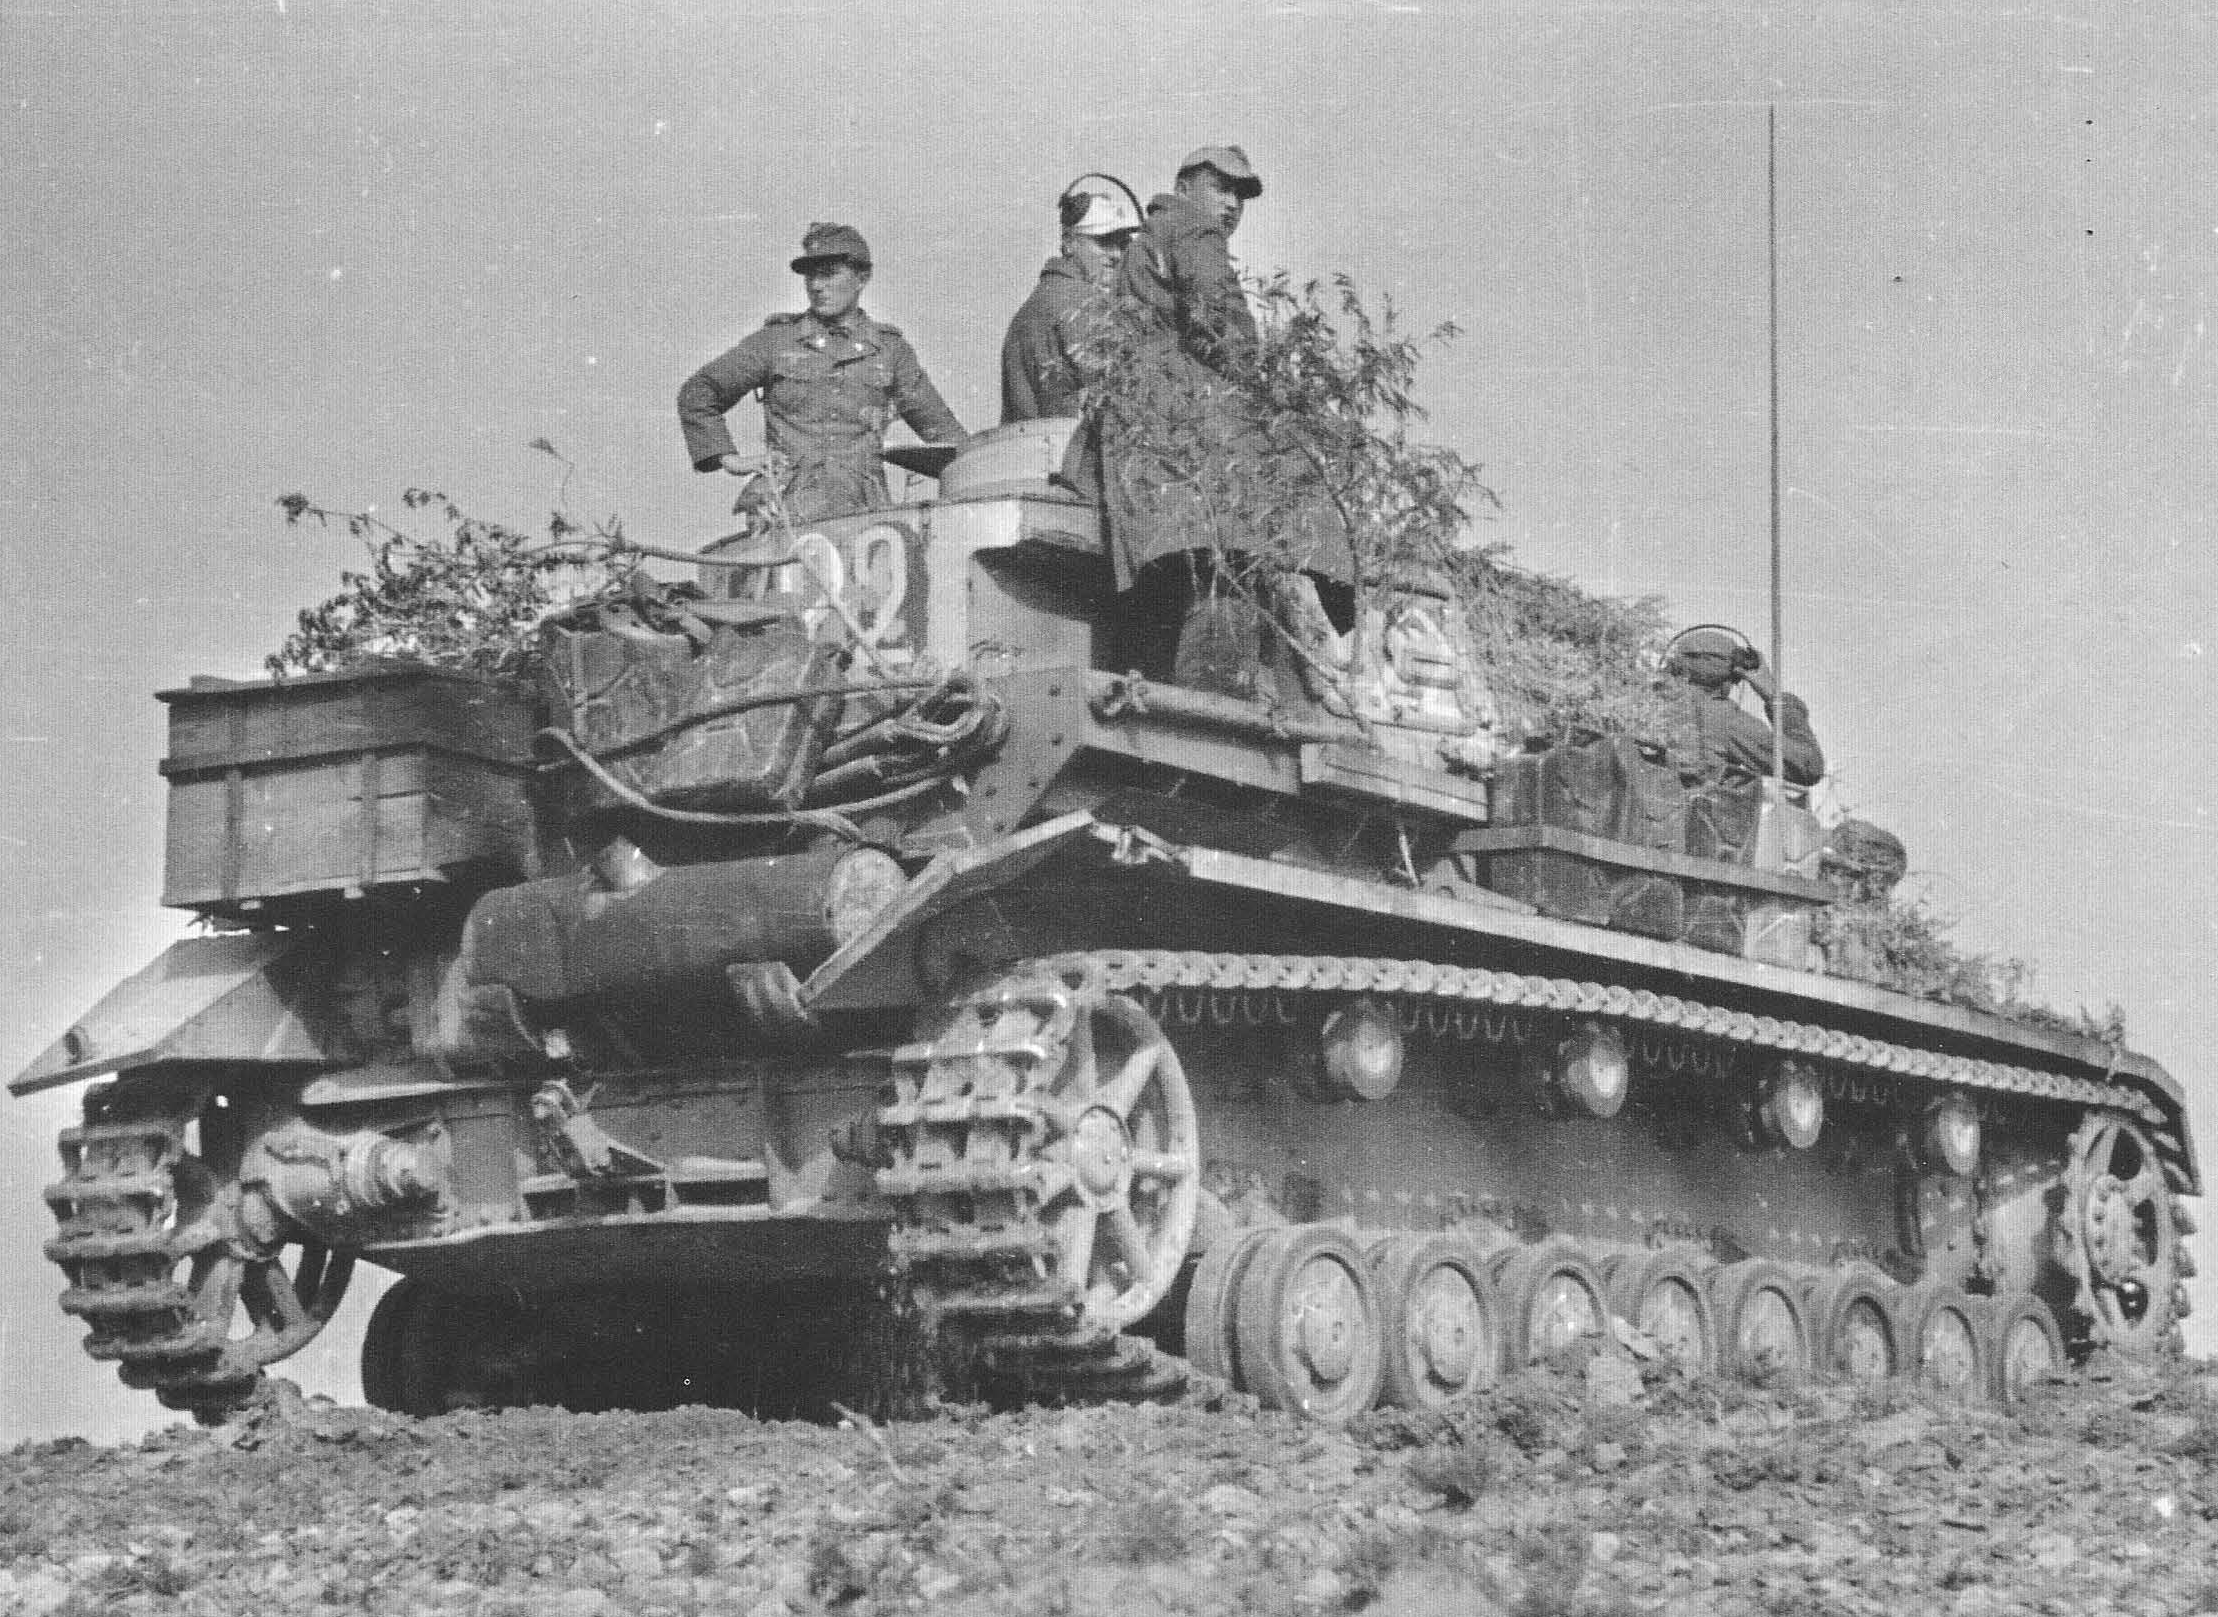 A Panzer 4 with it's crew while operating with the Afrika Korps